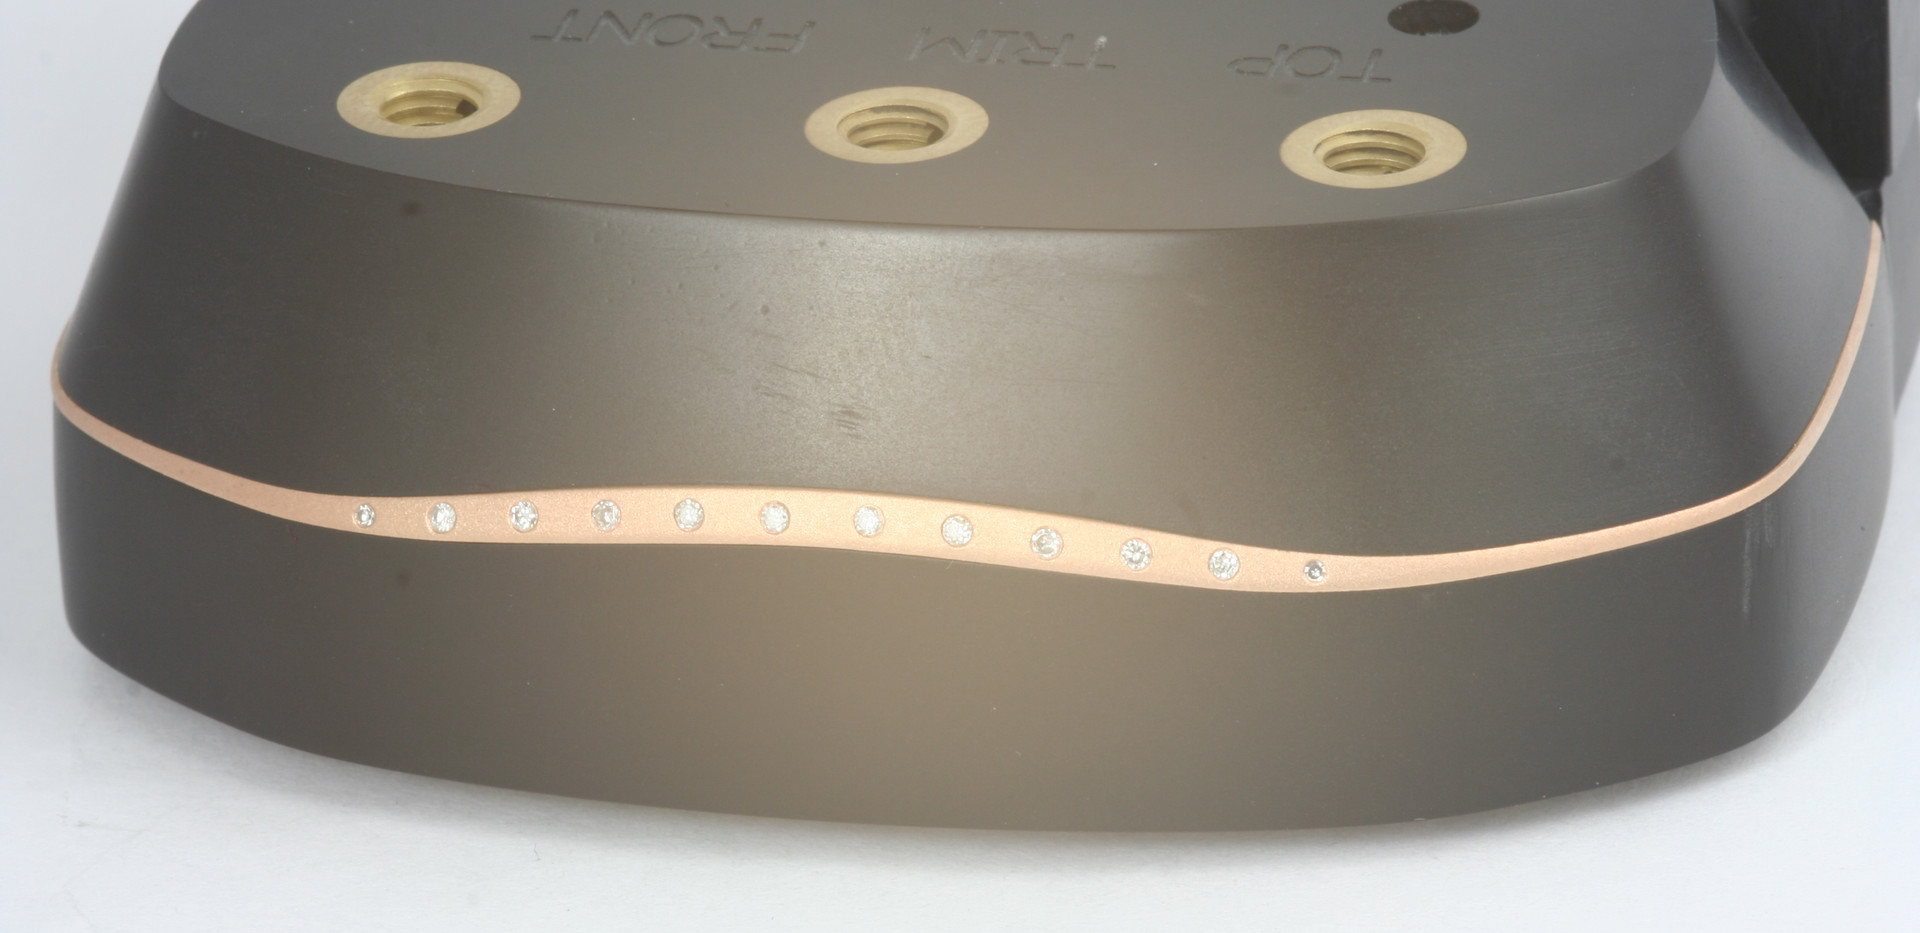 Top trim in fixture for setting